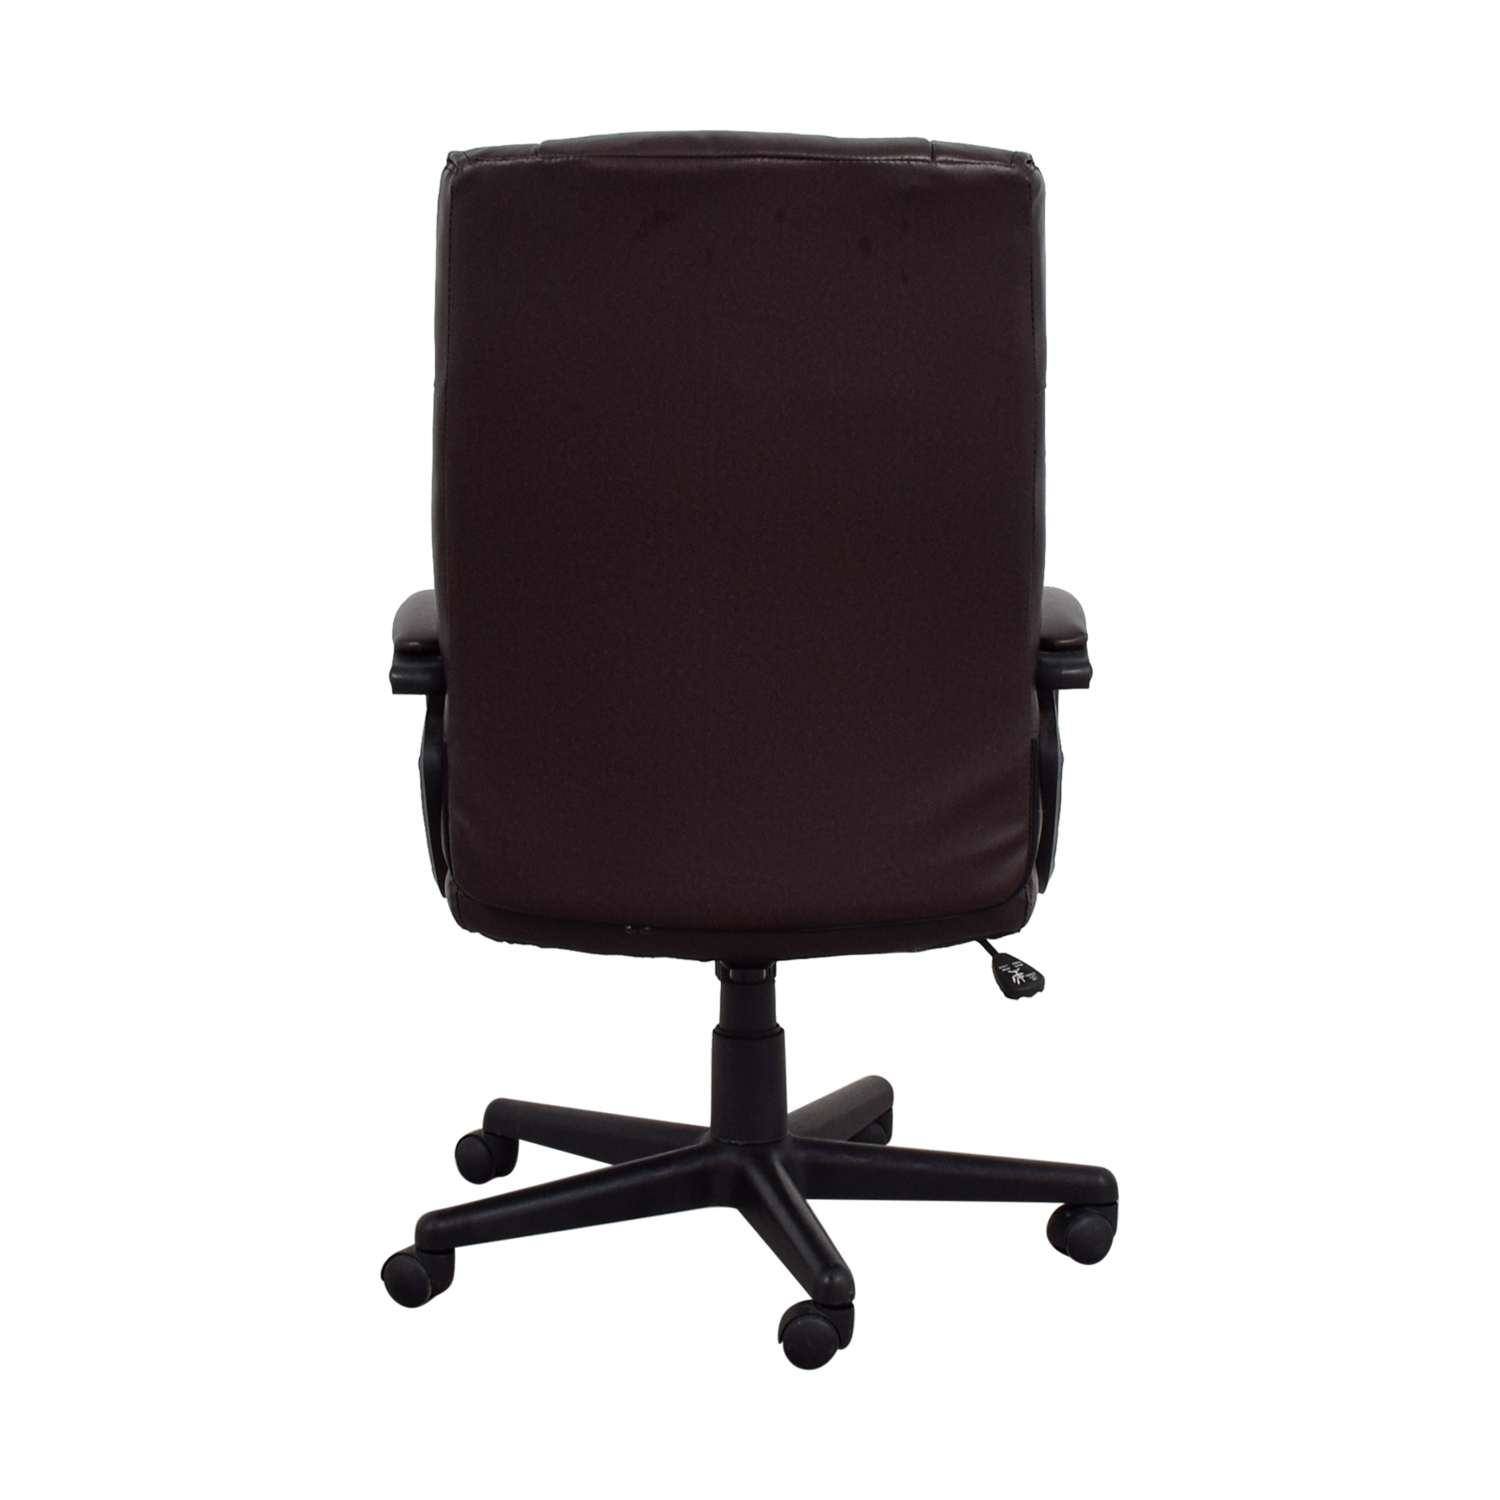 Brown Leather Desk Chair price